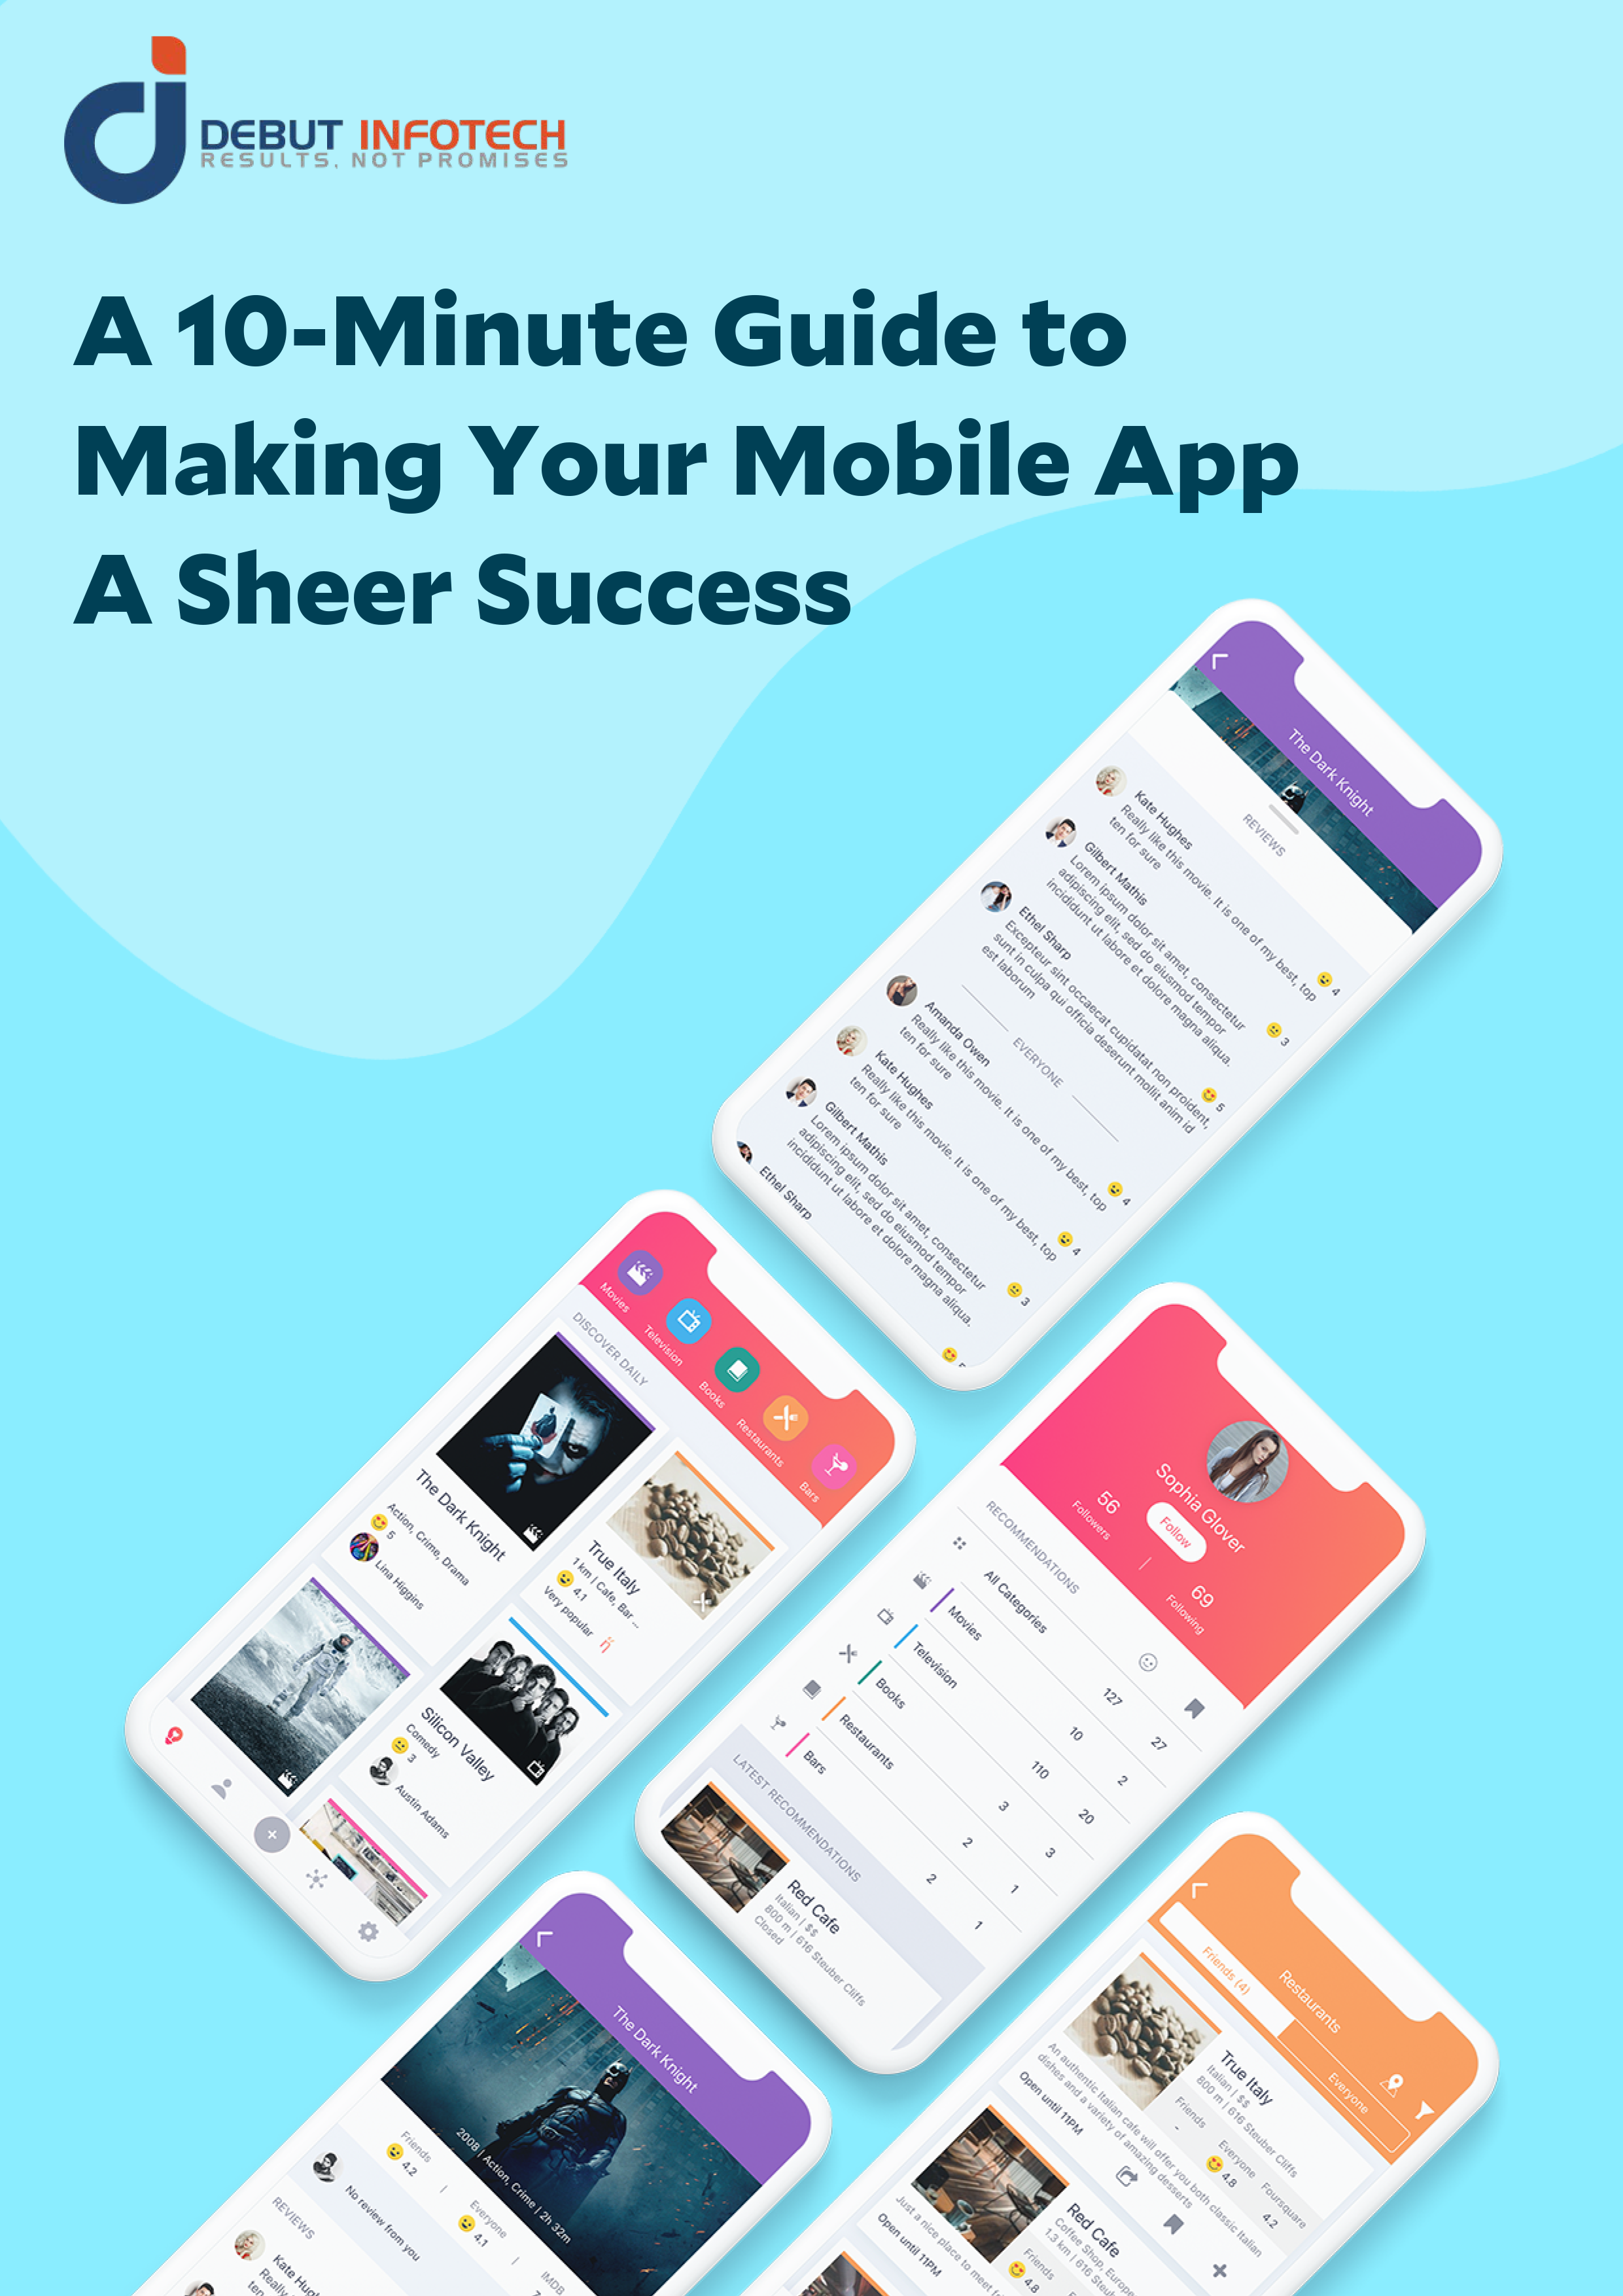 Guide to make you mobile app a sheer success | Ebook